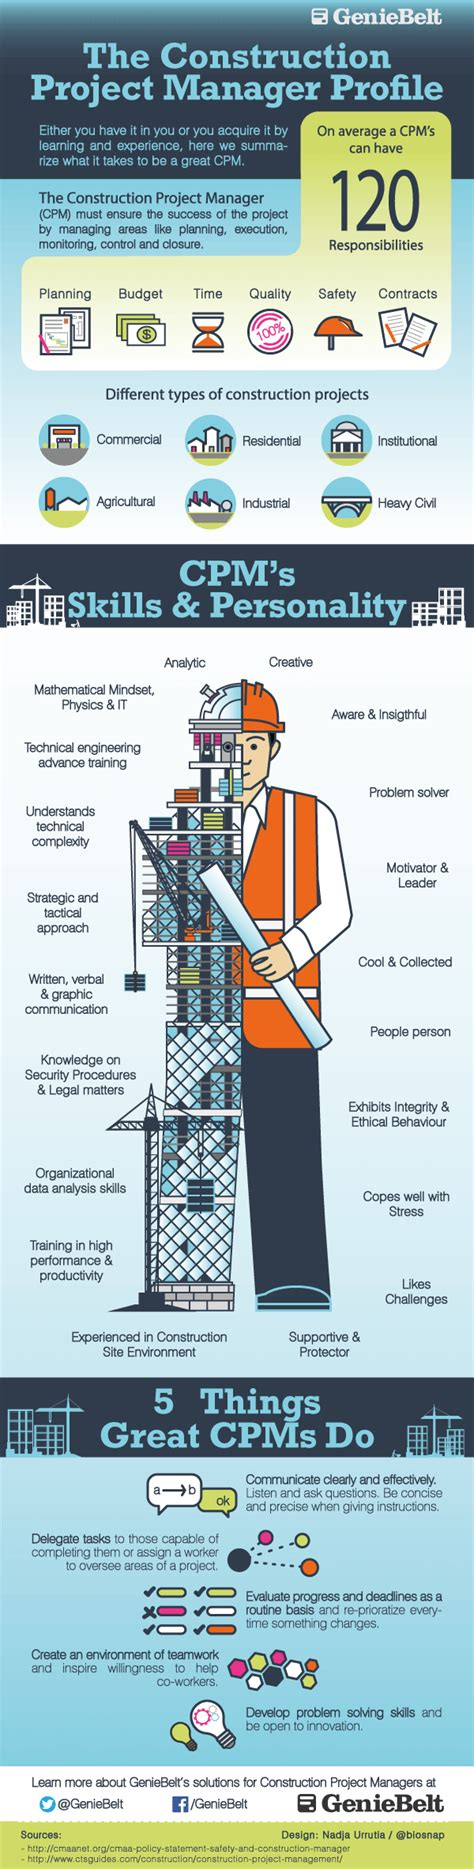 Project Manager Profile by Construction Project Manager Infographic Geniebelt